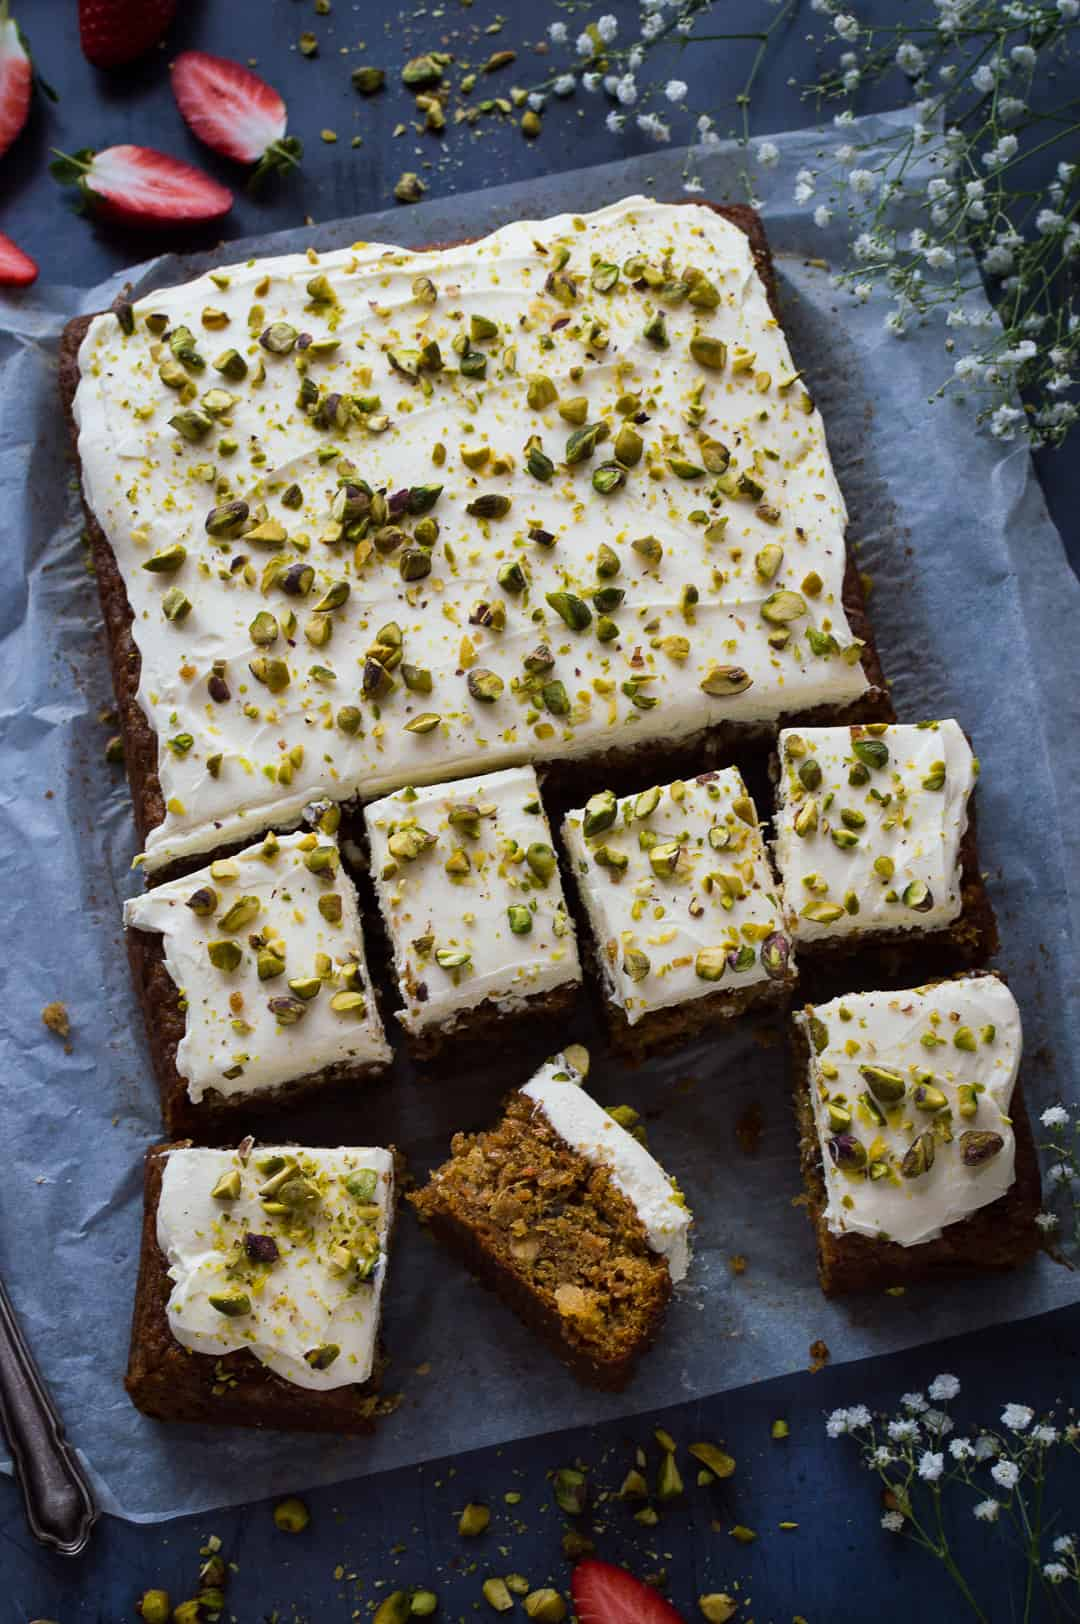 carrot, pineapple and pistachio cake topped with cream cheese frosting sliced into squares